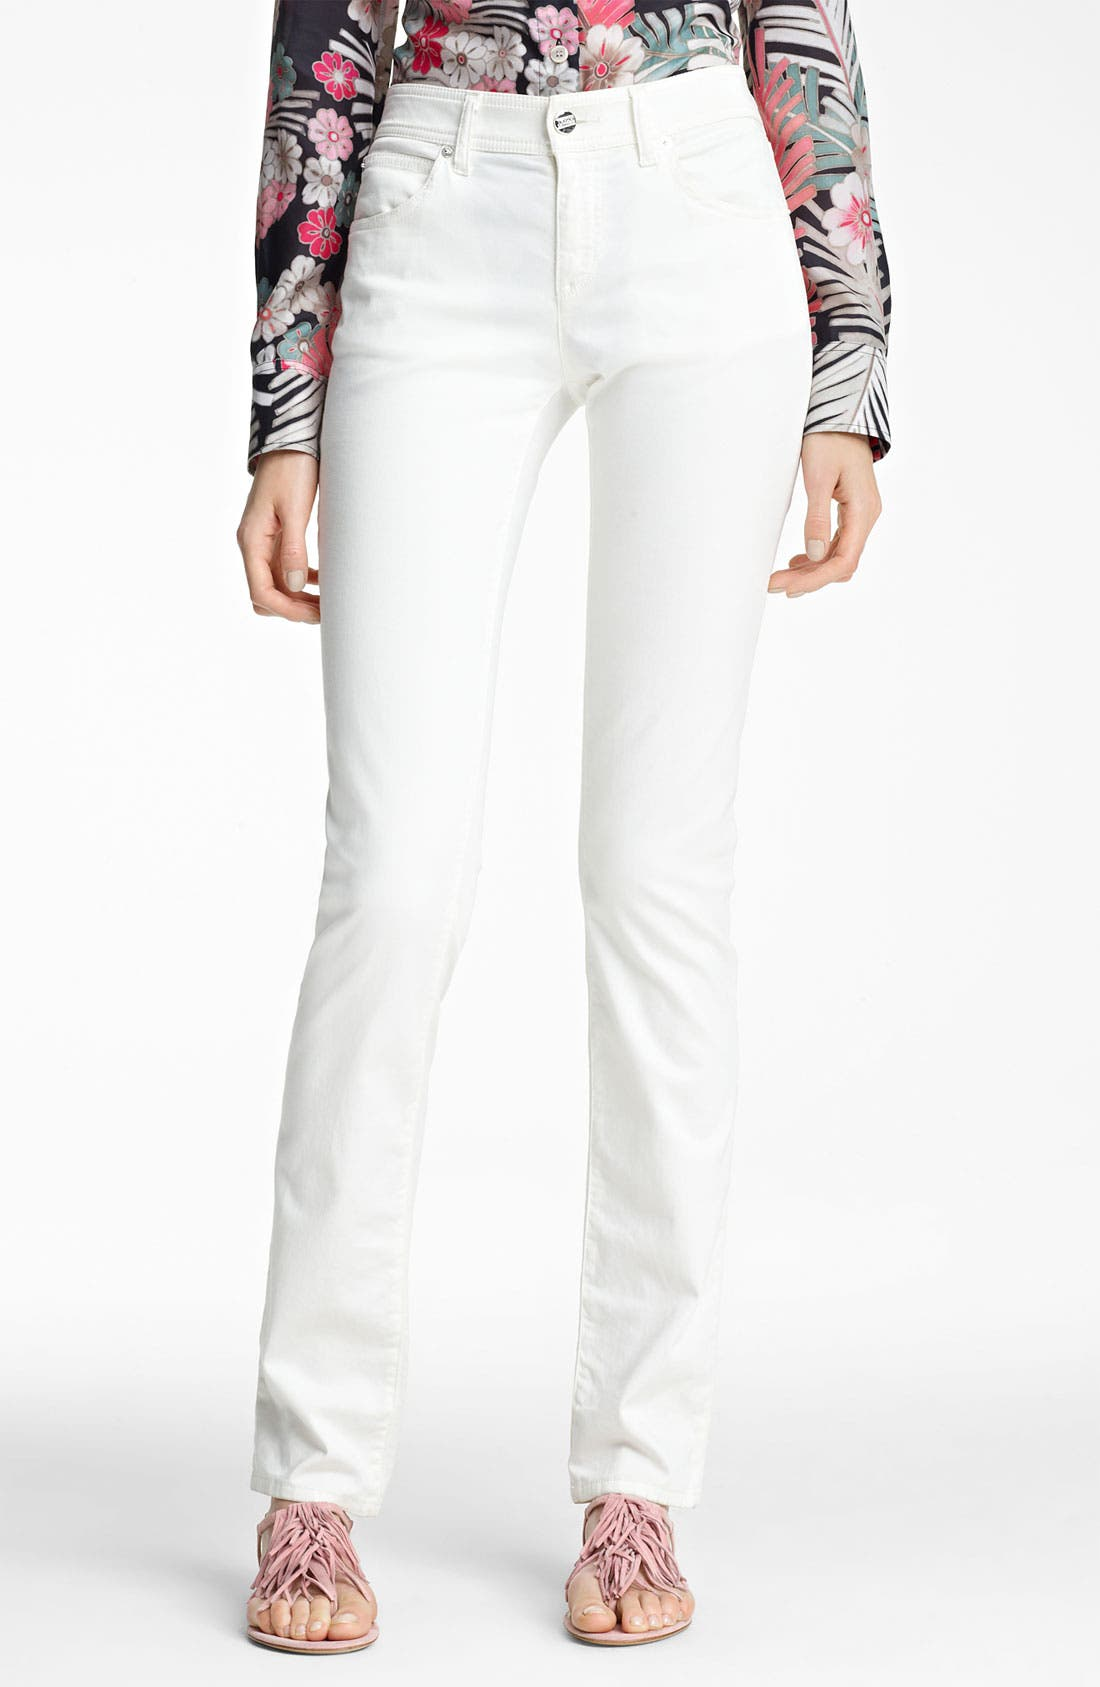 Main Image - Armani Collezioni High Waist Stretch Jeans